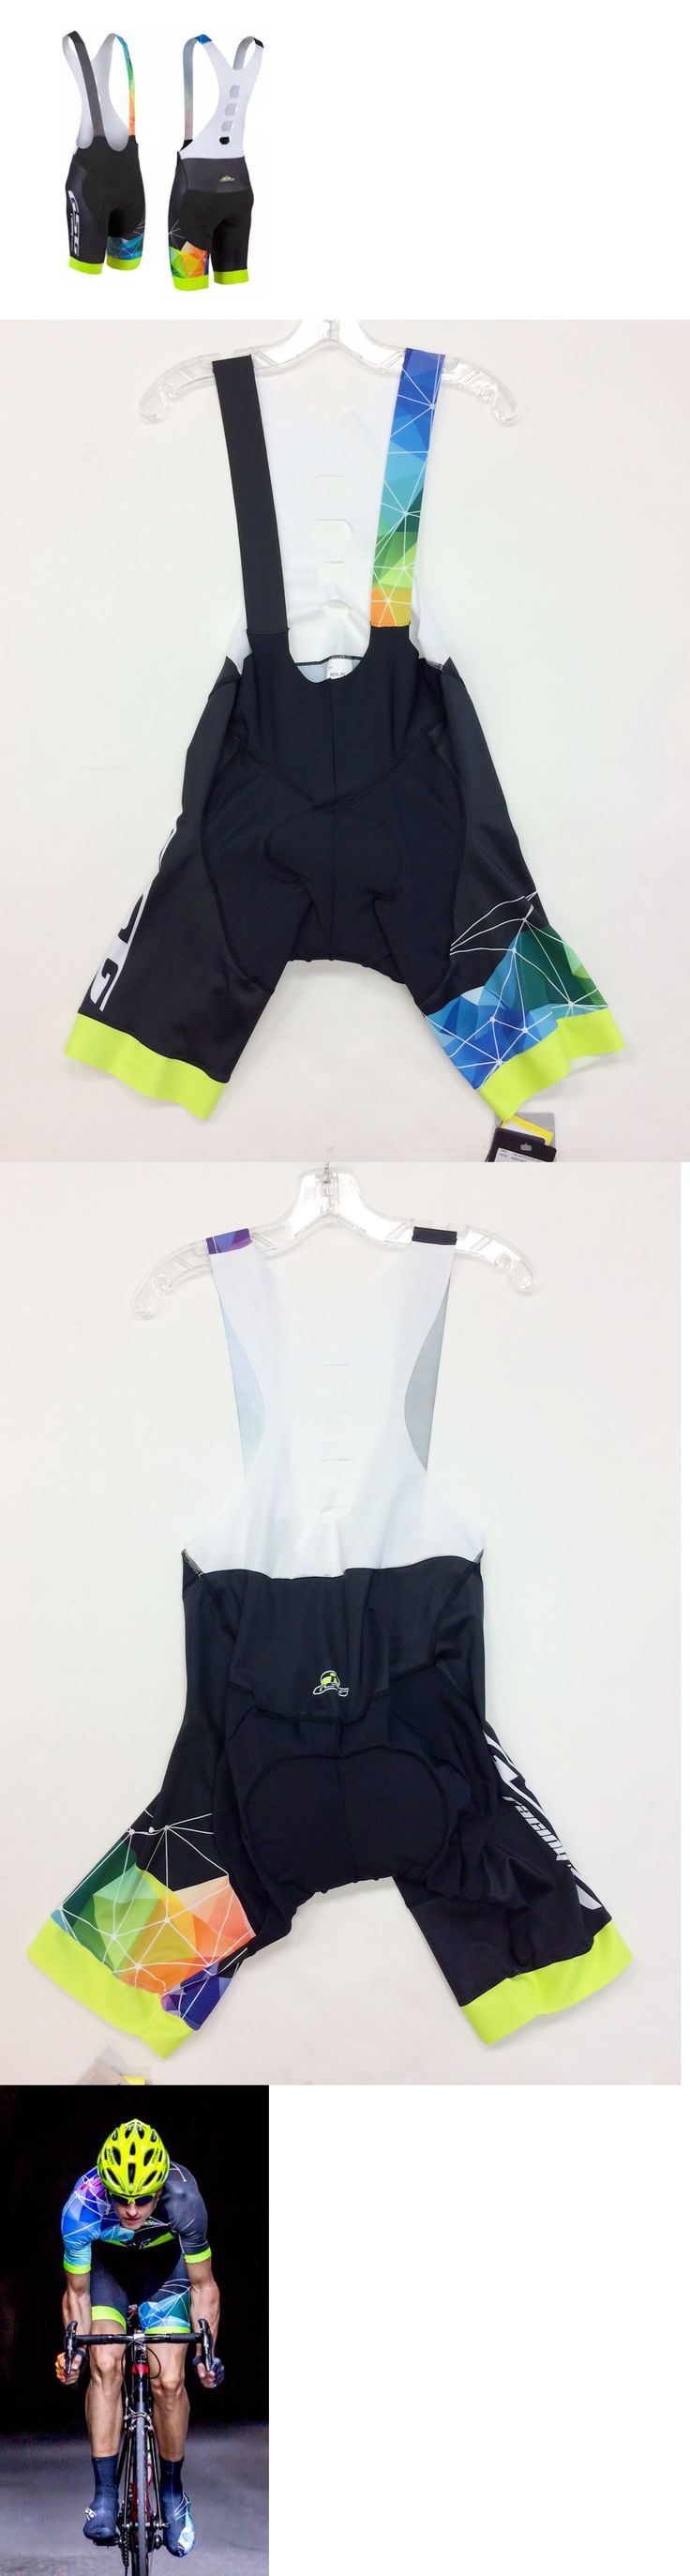 Shorts 177853: Spider Web Professional Cycling Bib Shorts Made In Italy By Gsg -> BUY IT NOW ONLY: $83.96 on eBay!